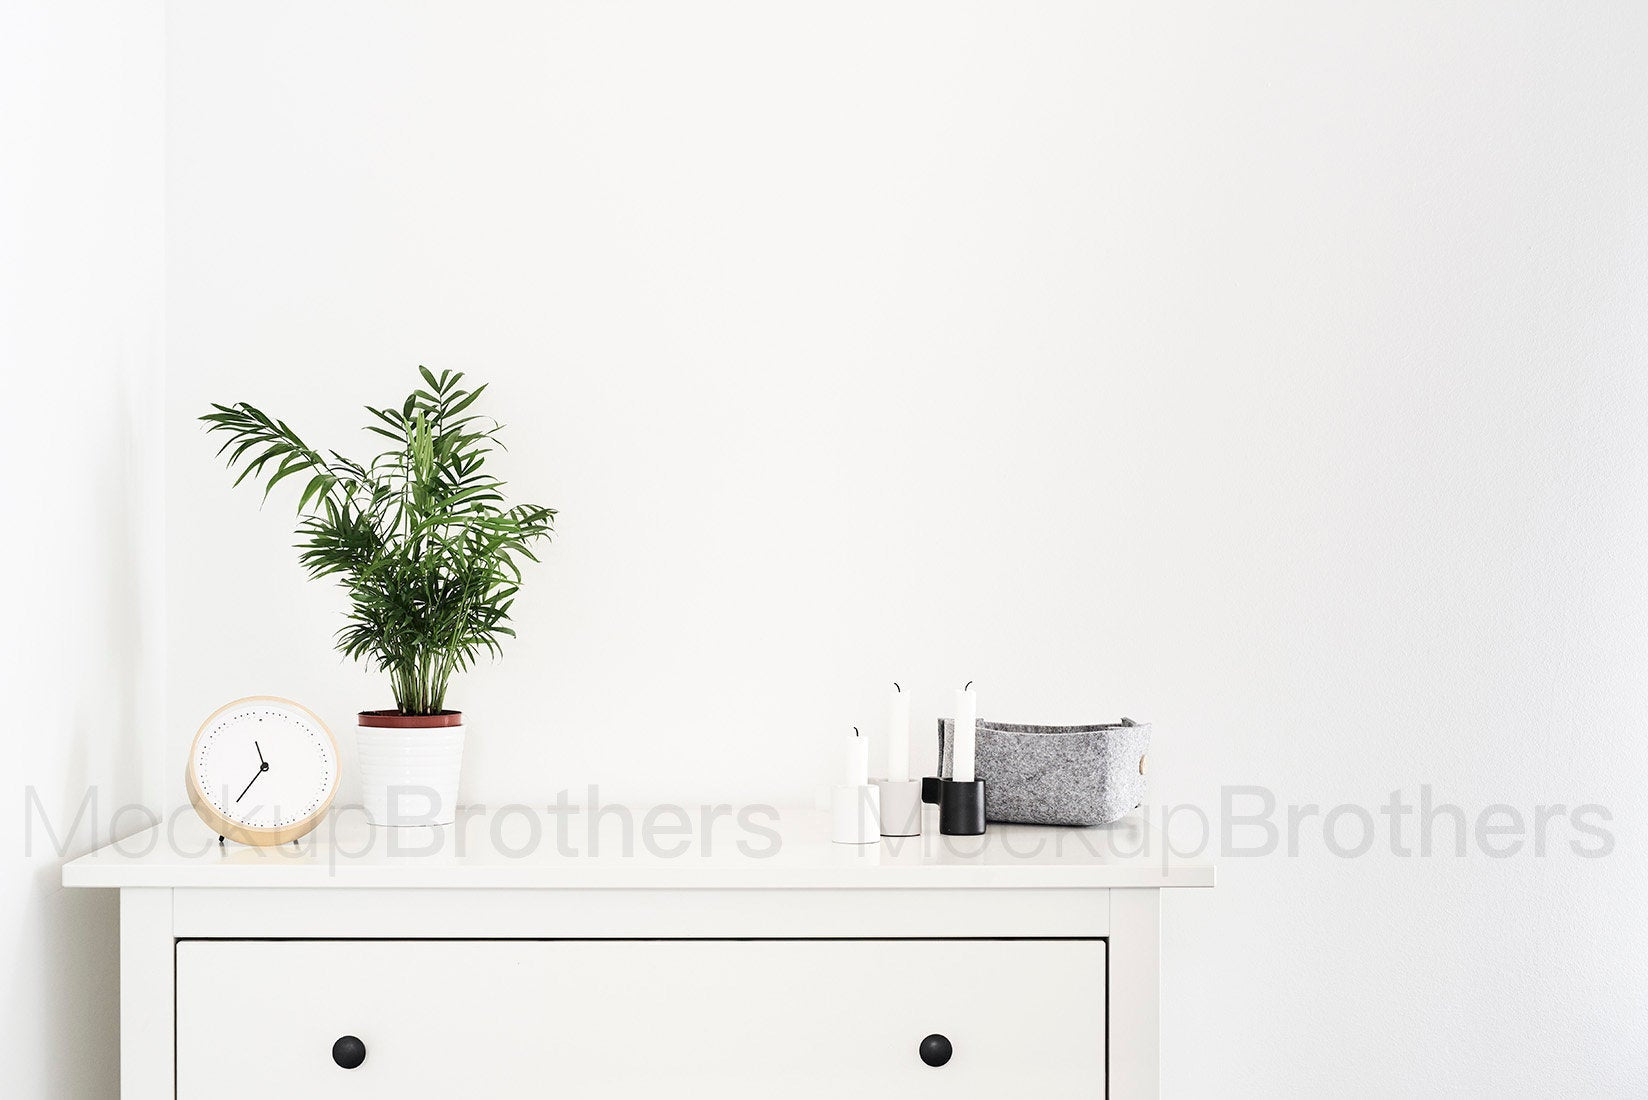 Interior stock photography by mockup brothers